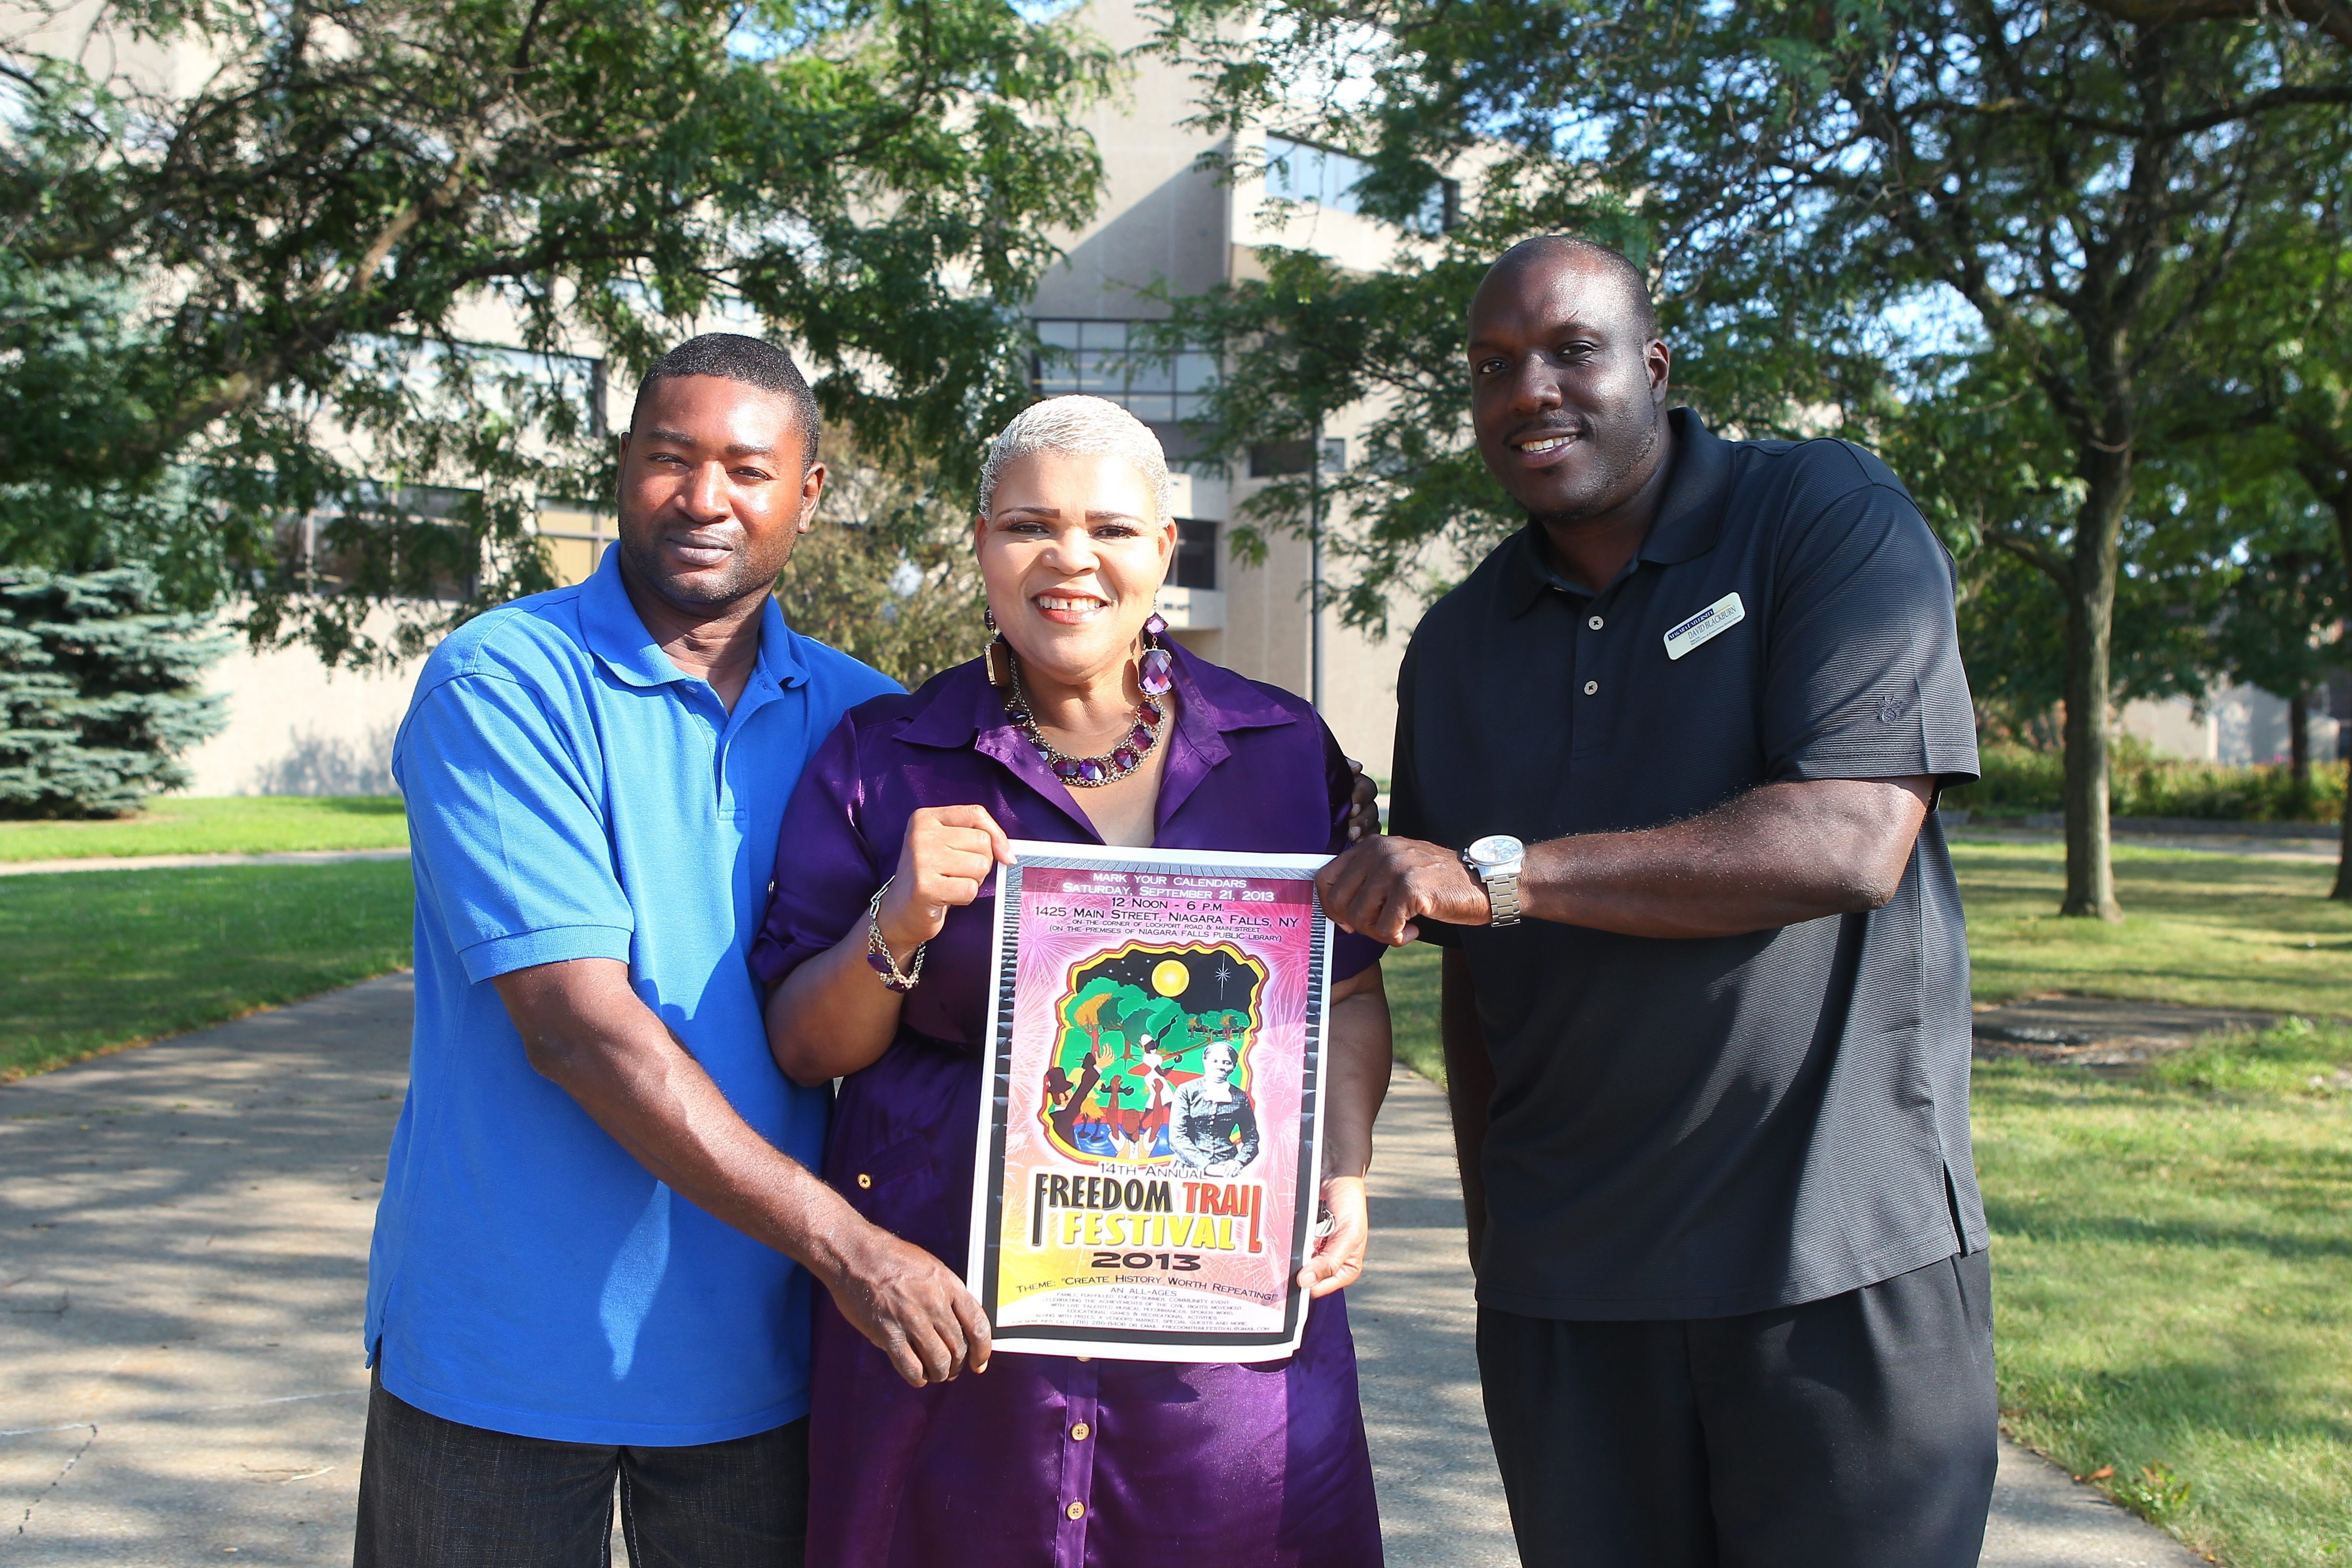 David Blackburn, right, organizer of the Freedom Trail Festival, joins with gospel singer Marsha McWilson and her husband, Howard, to display a poster advertising the event, which will run from noon to 6 p.m. Saturday.